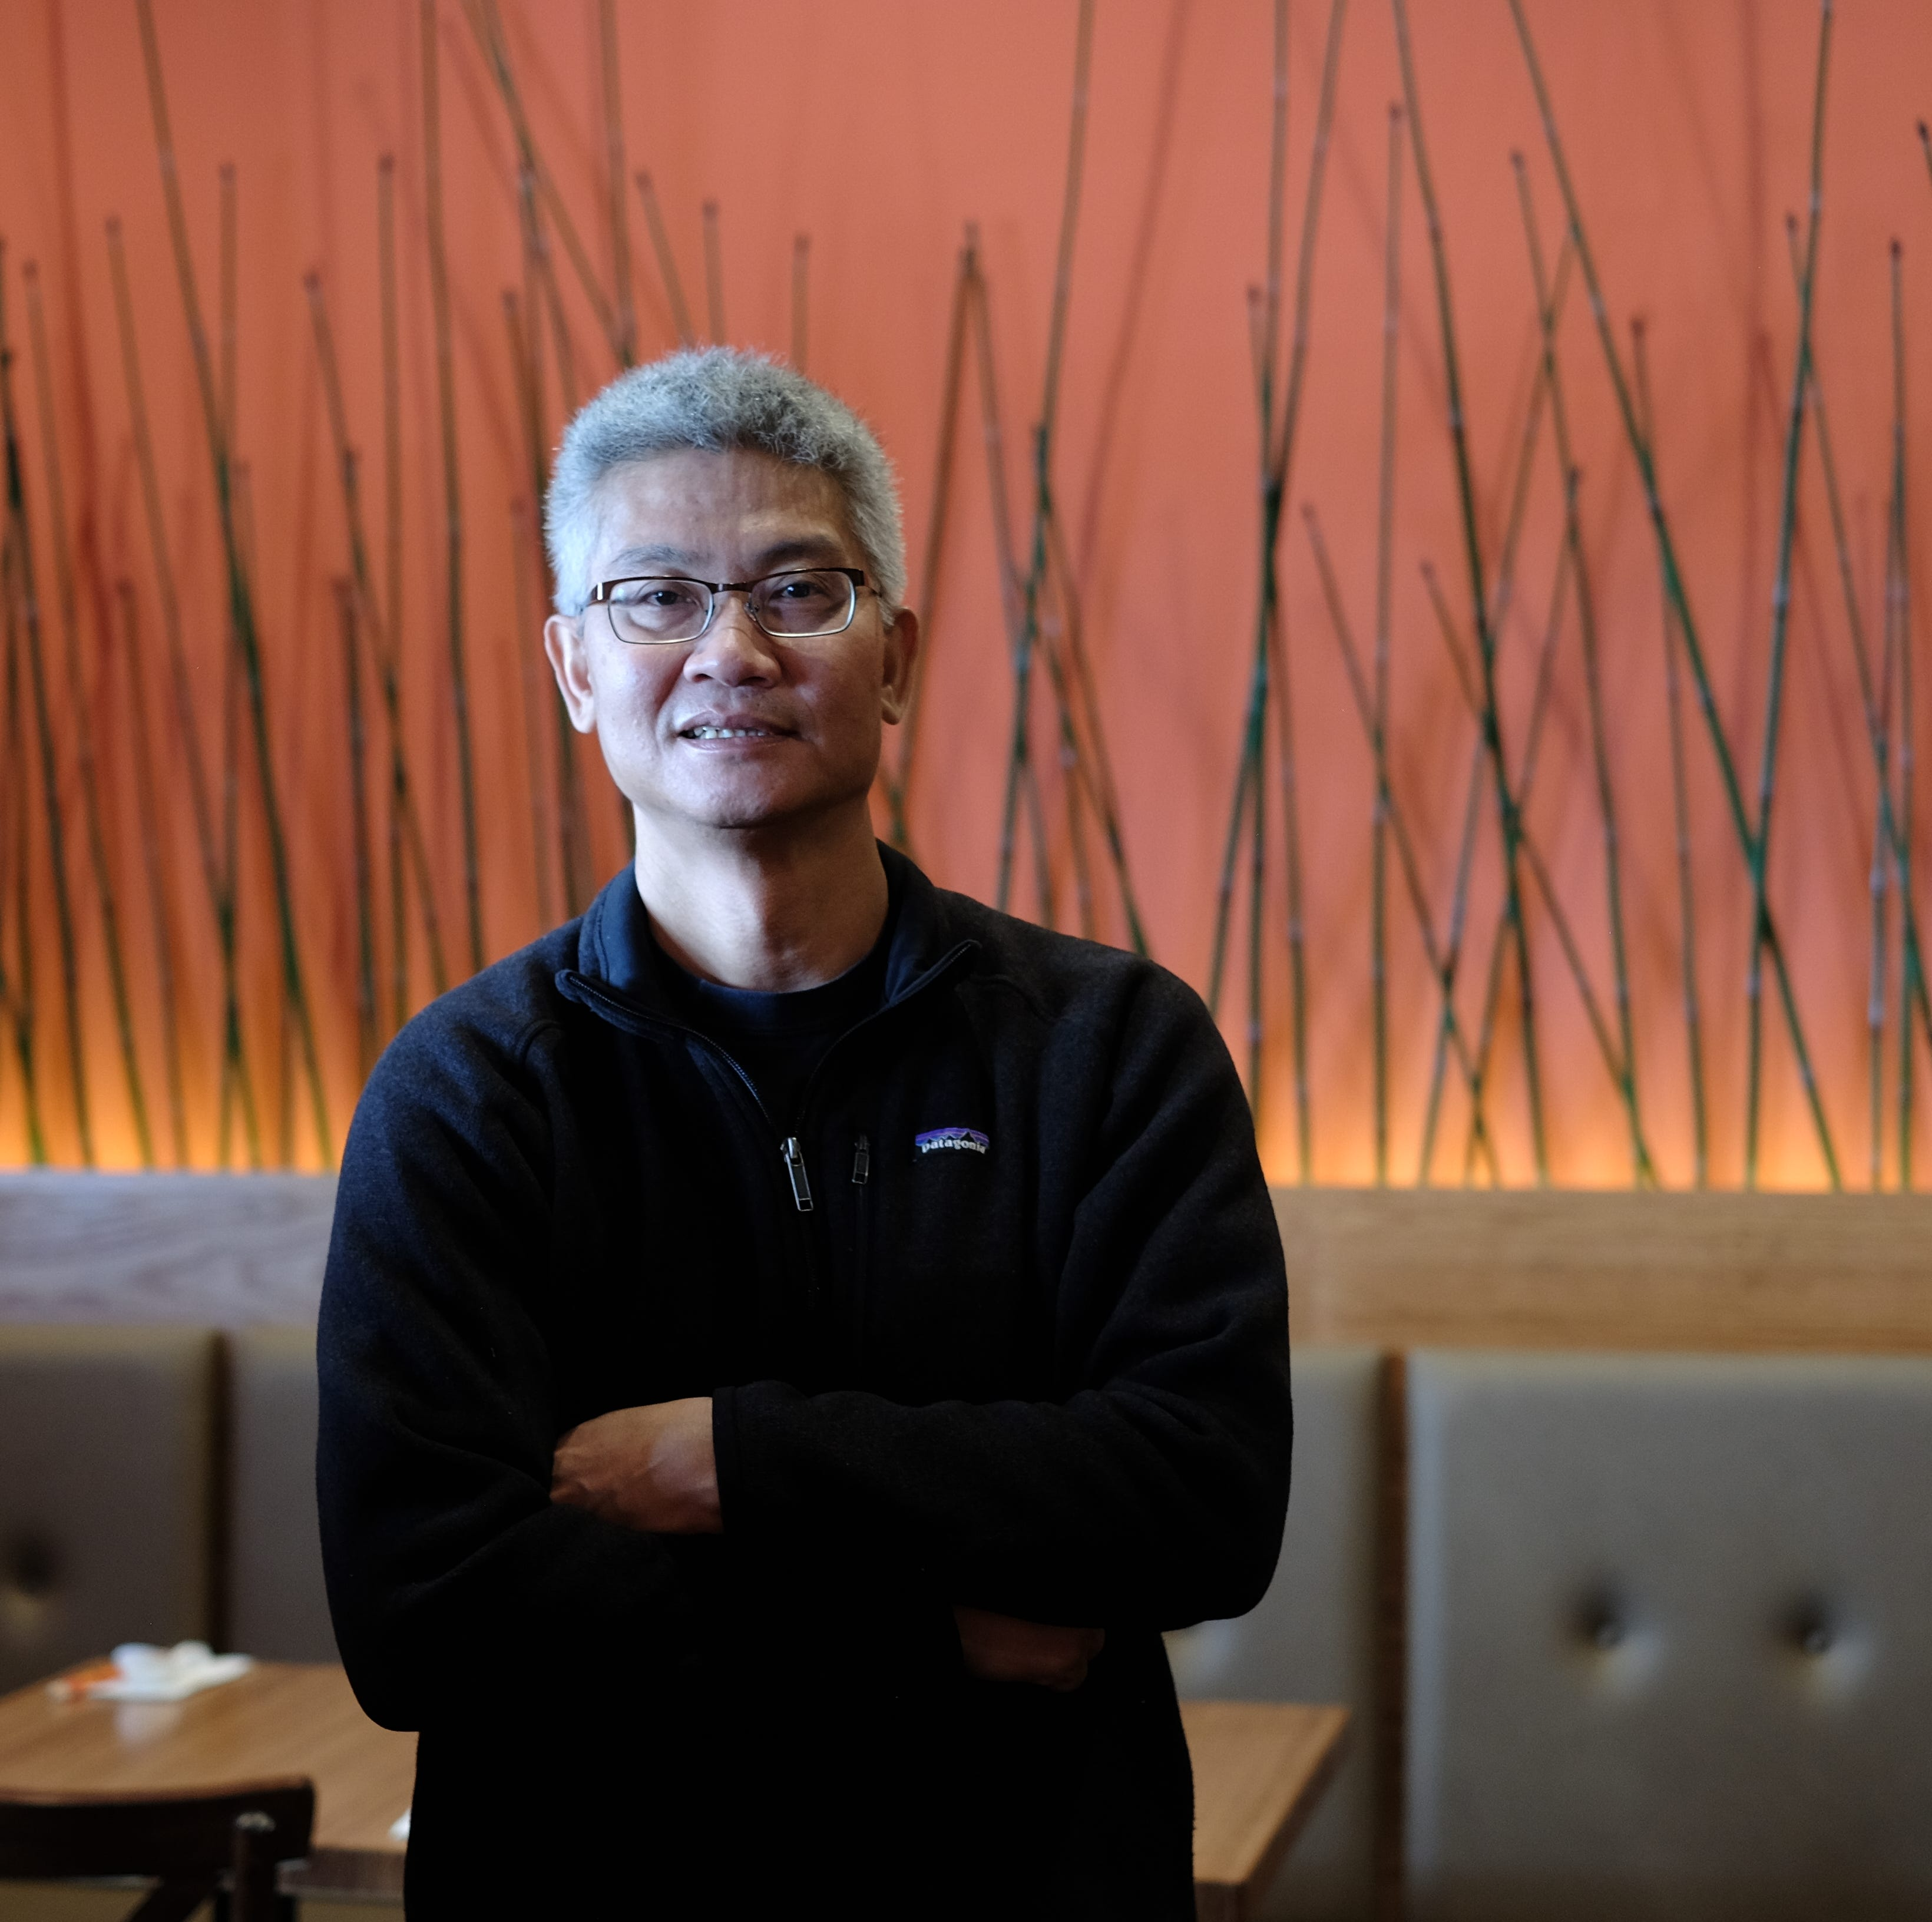 Rehoboth restaurant owner escaped Vietnam under communist rule, now thanks veterans